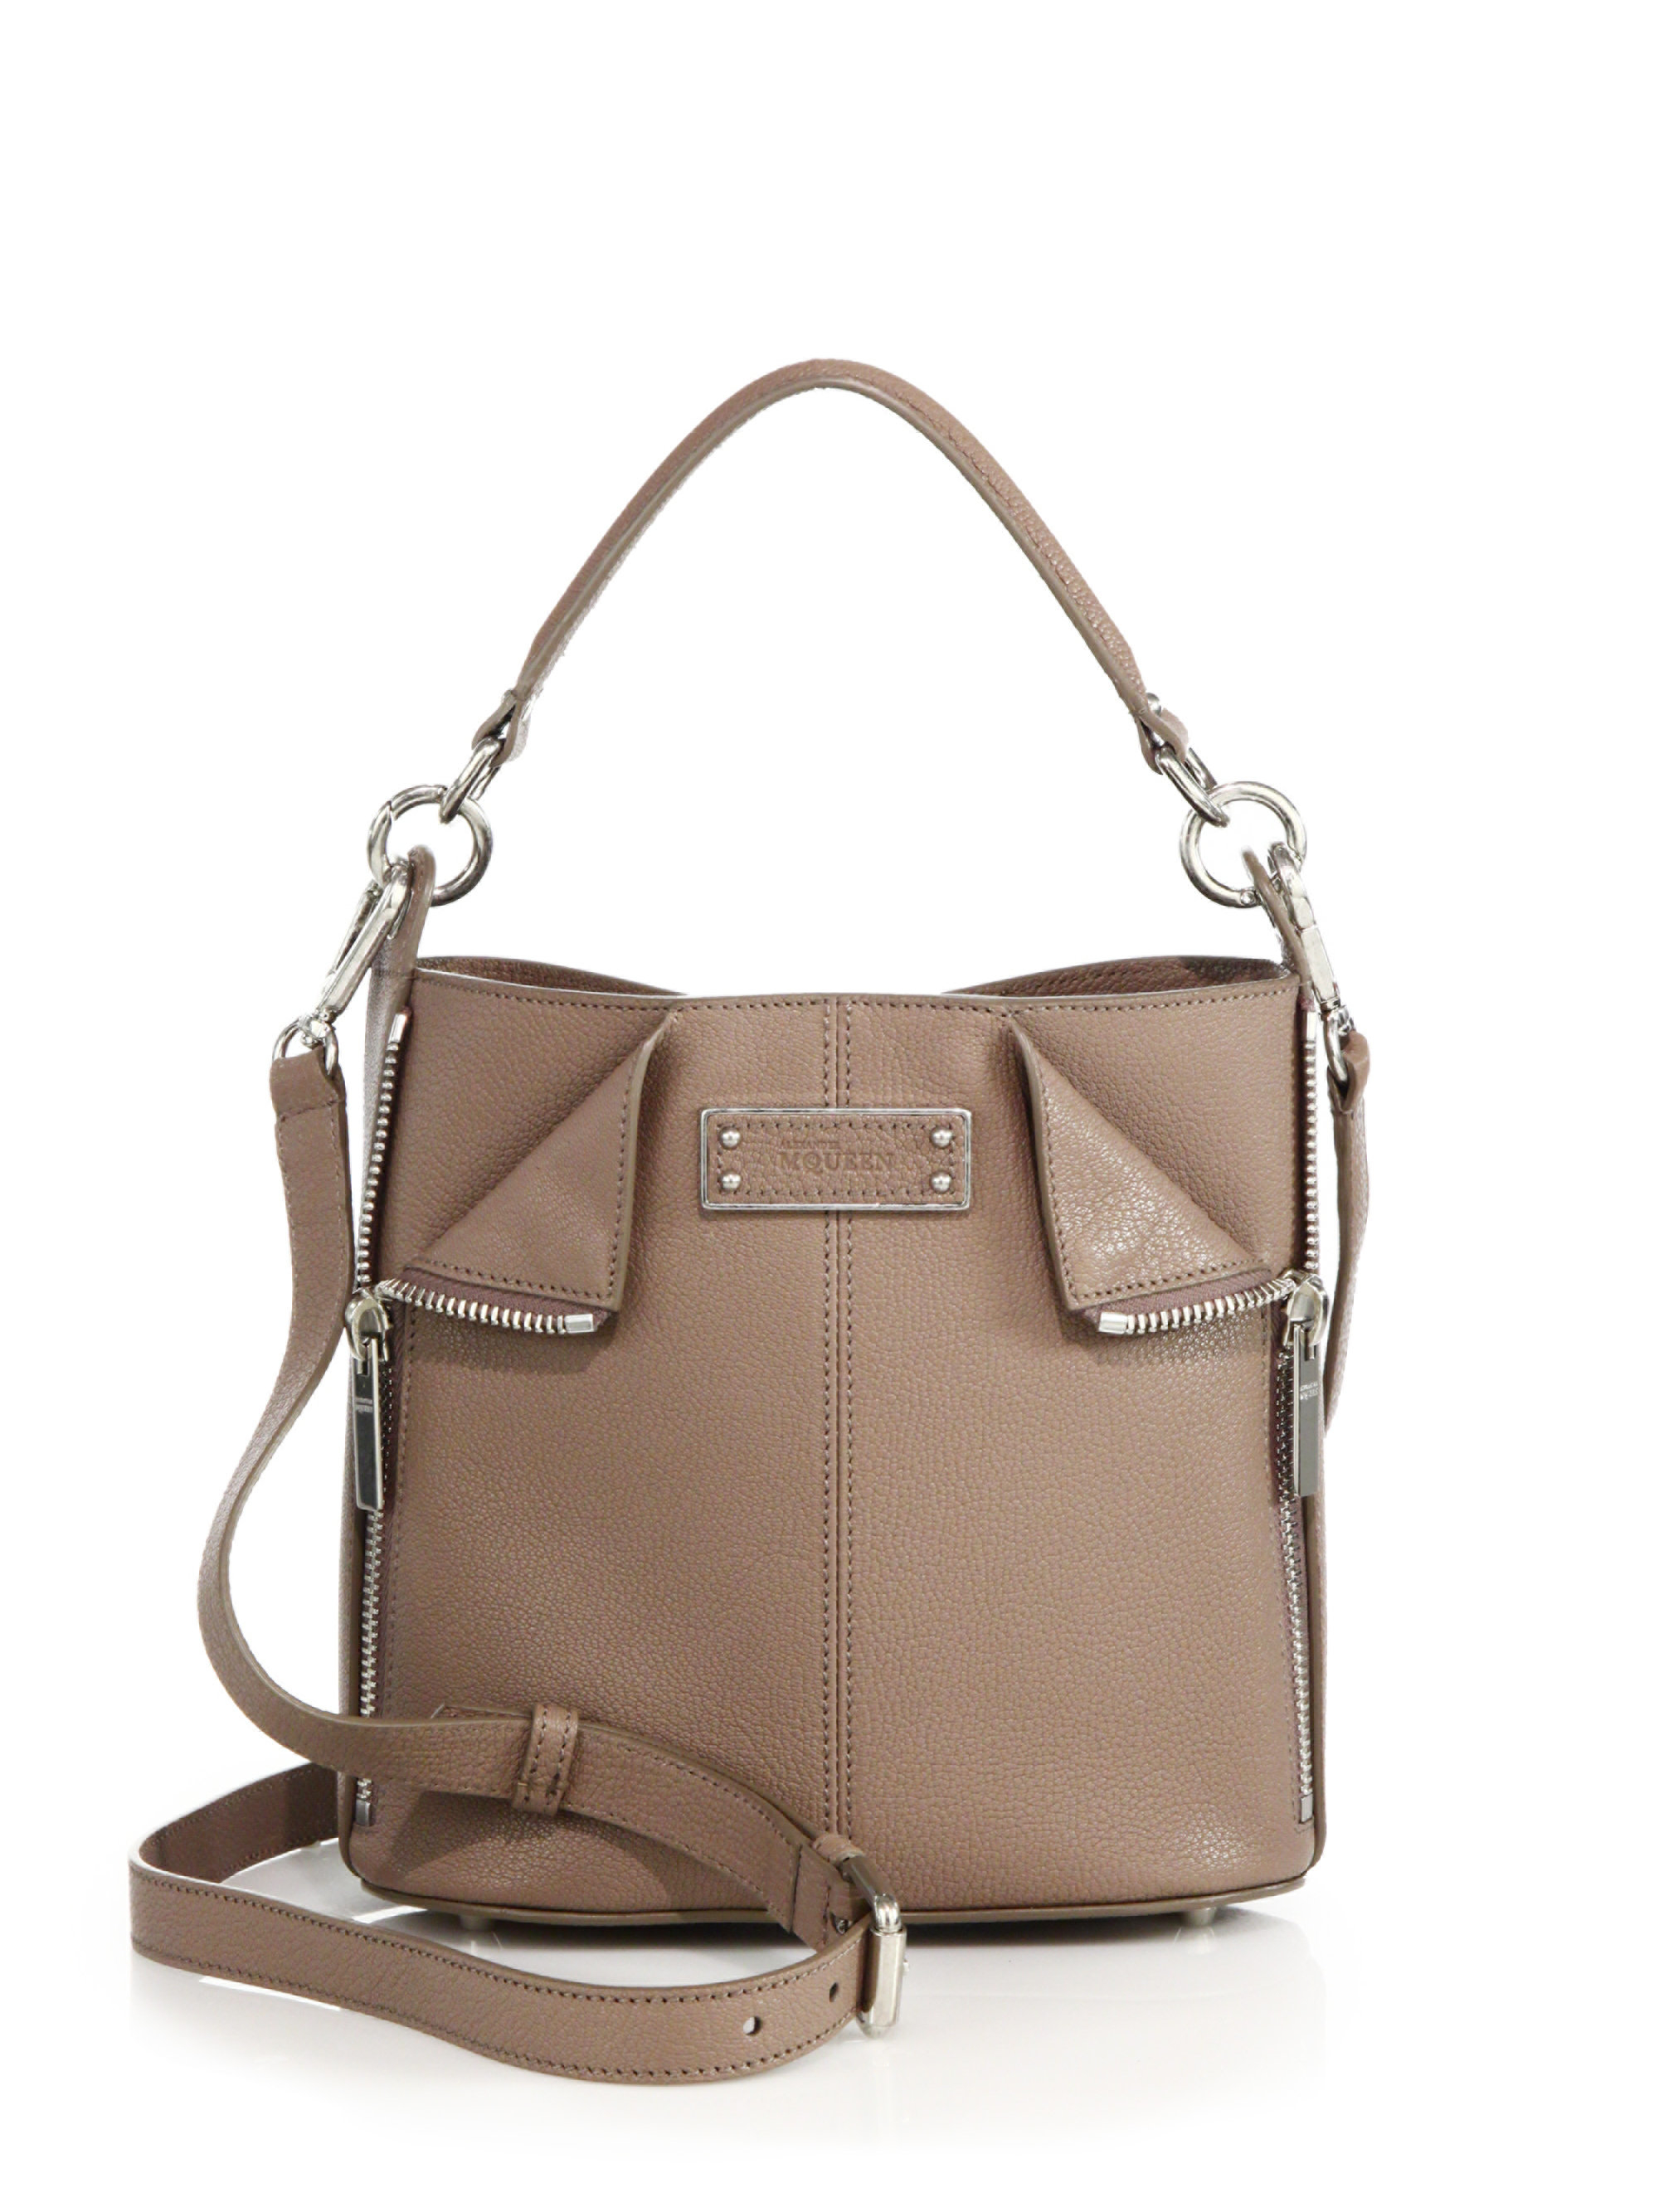 Shop Women's Shoulder Bags Now At bloggeri.tk And Enjoy Free Shipping & Returns On All Orders.